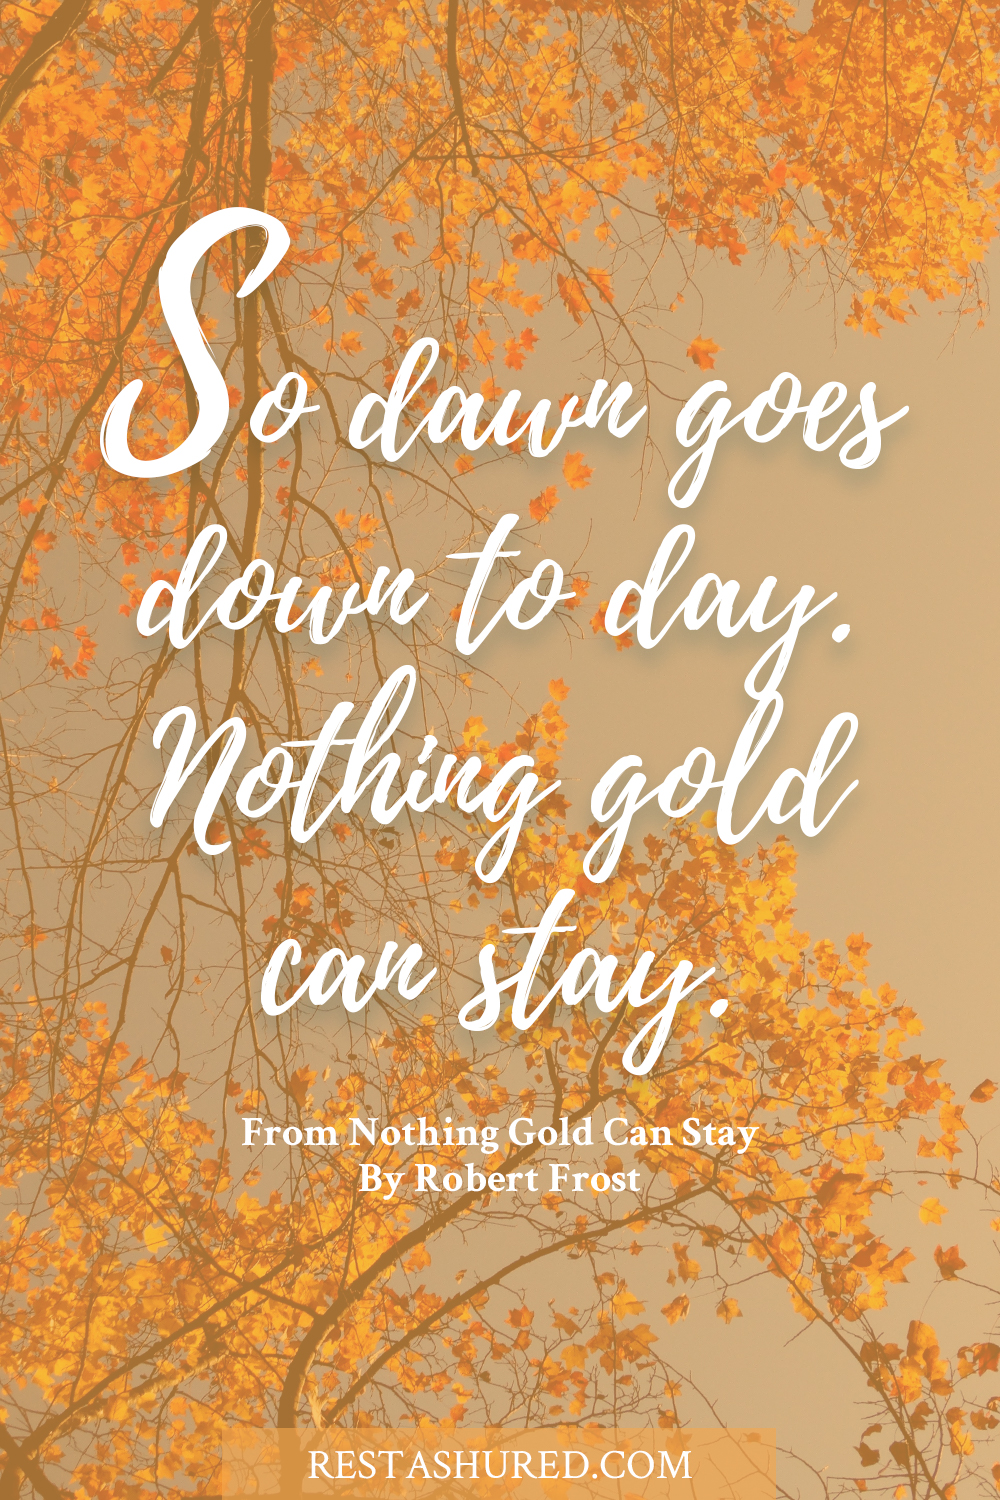 Poem - Robert Frost, Nothing Gold Can Stay